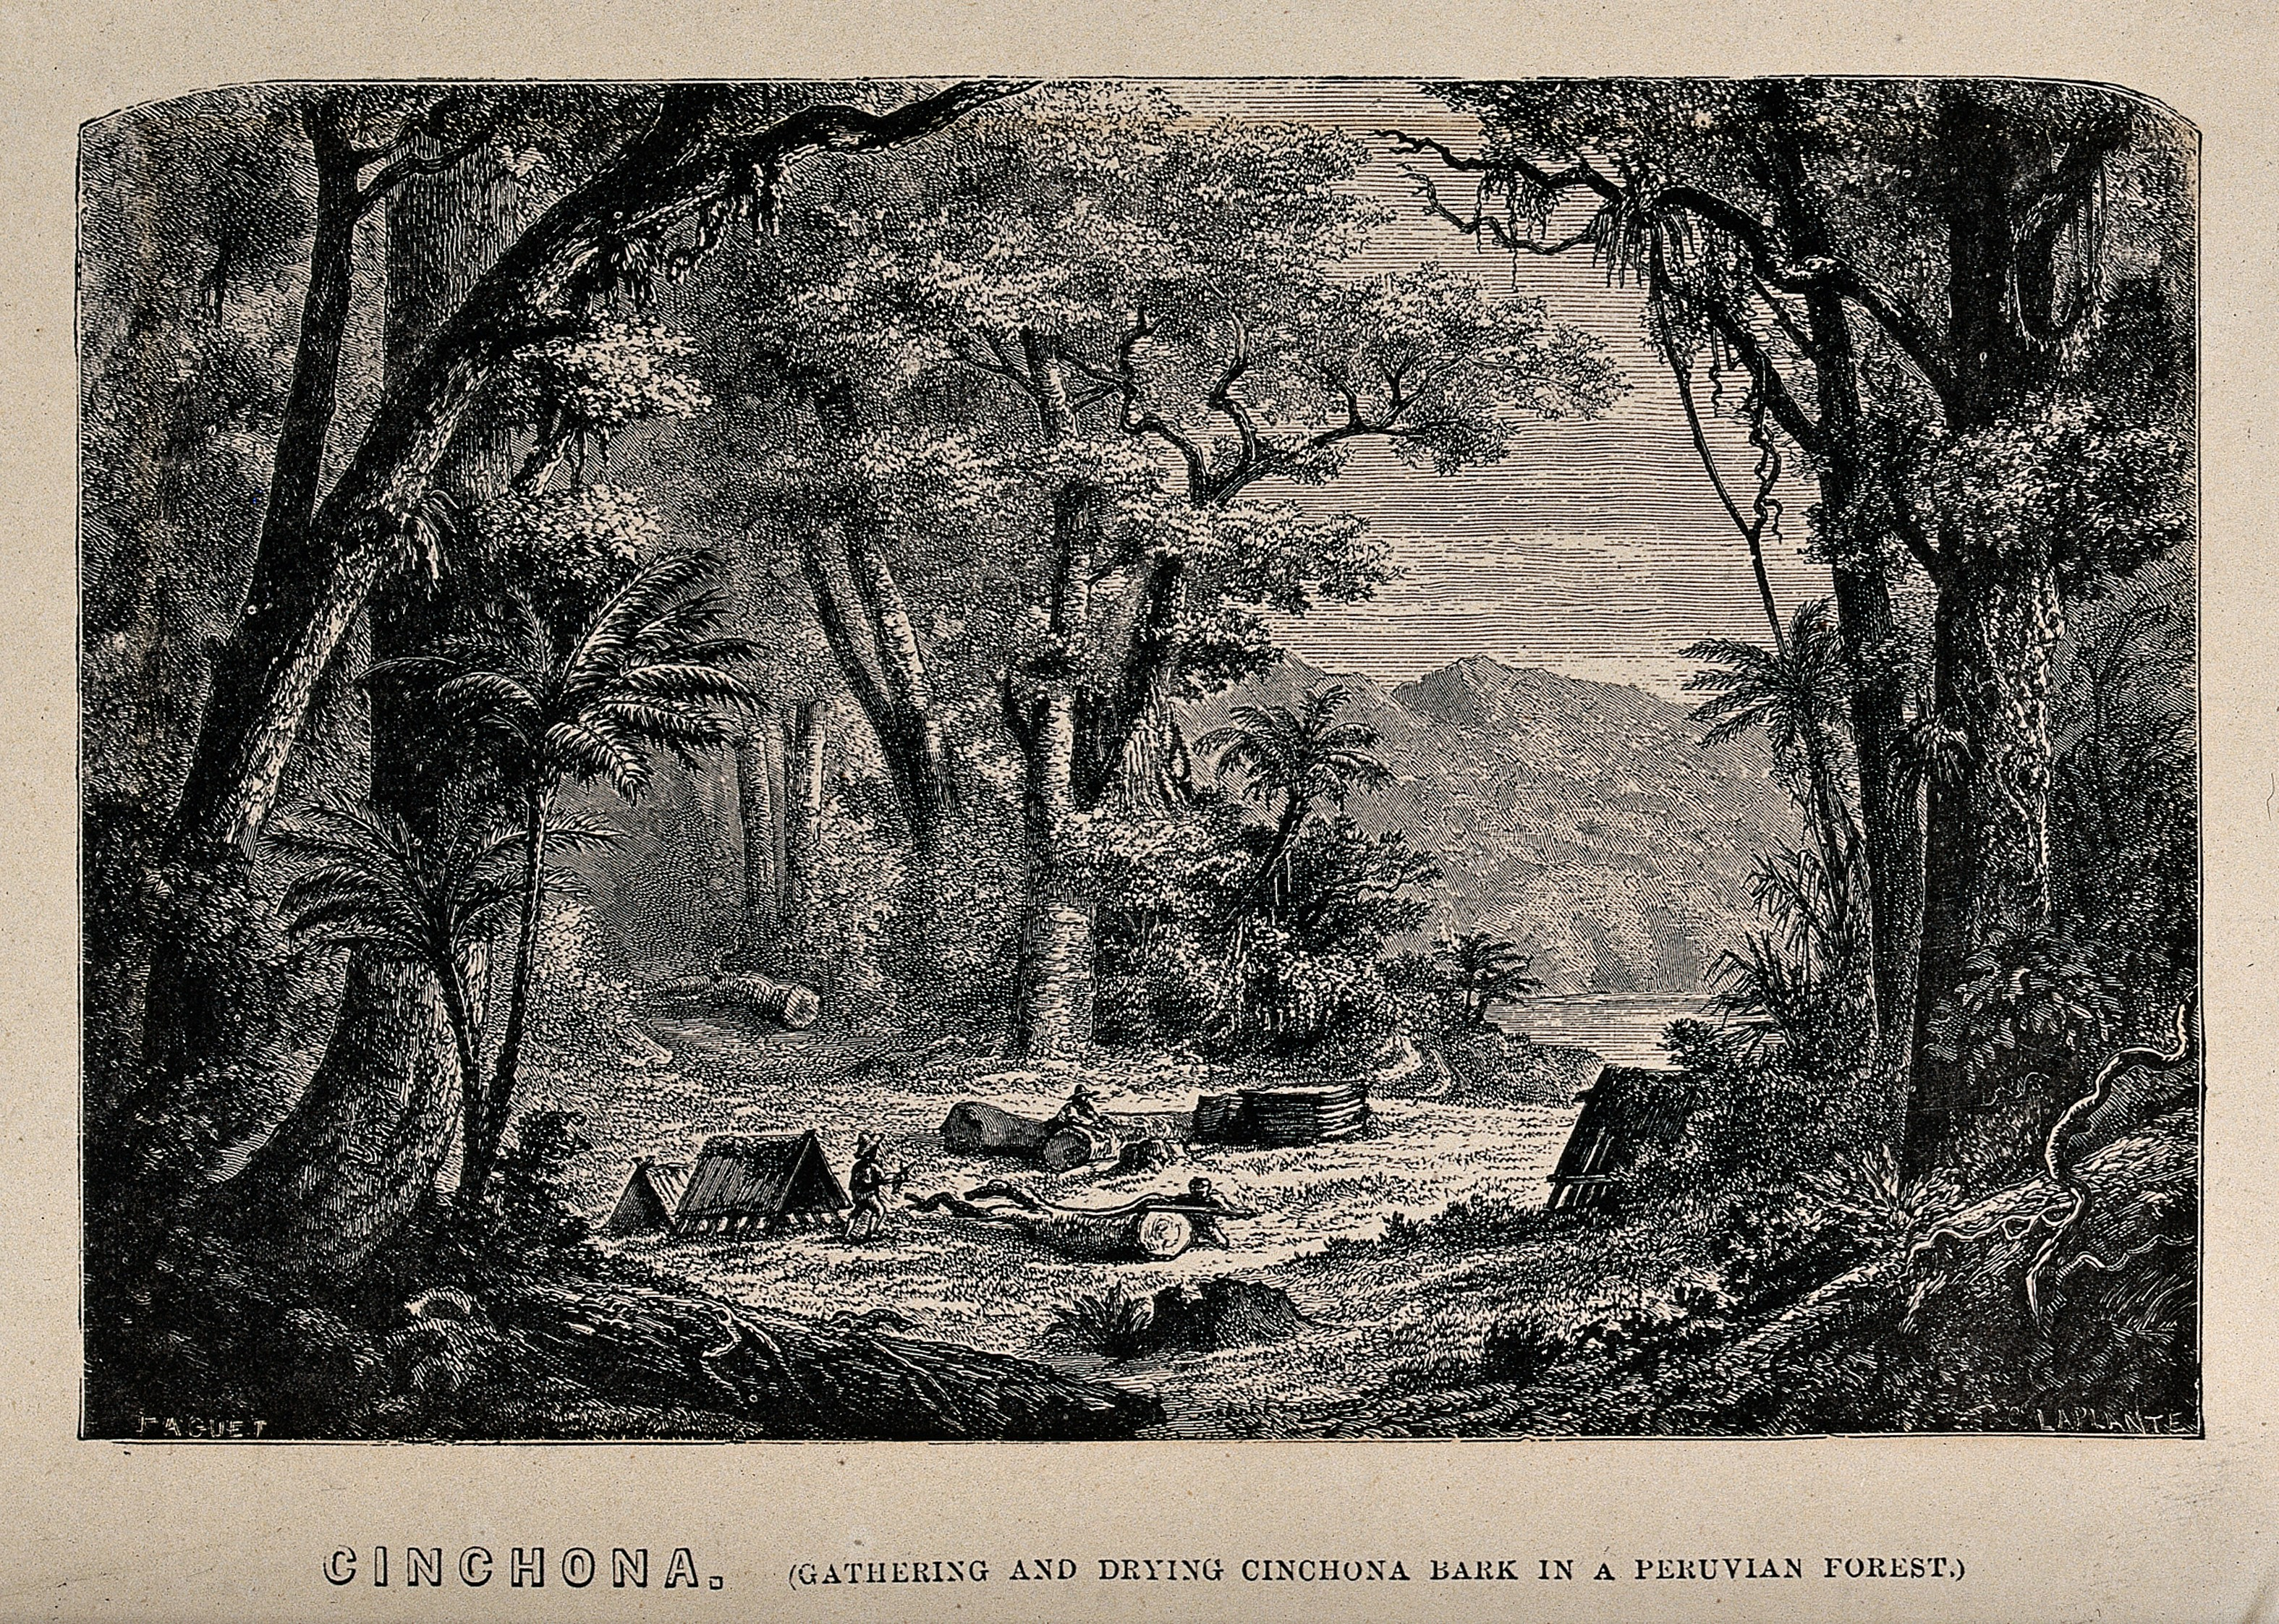 The gathering and drying of cinchona bark in a Peruvian forest – wood engraving by C Leplante (1867) (Image: Wellcome Images/Wikimedia Commons)